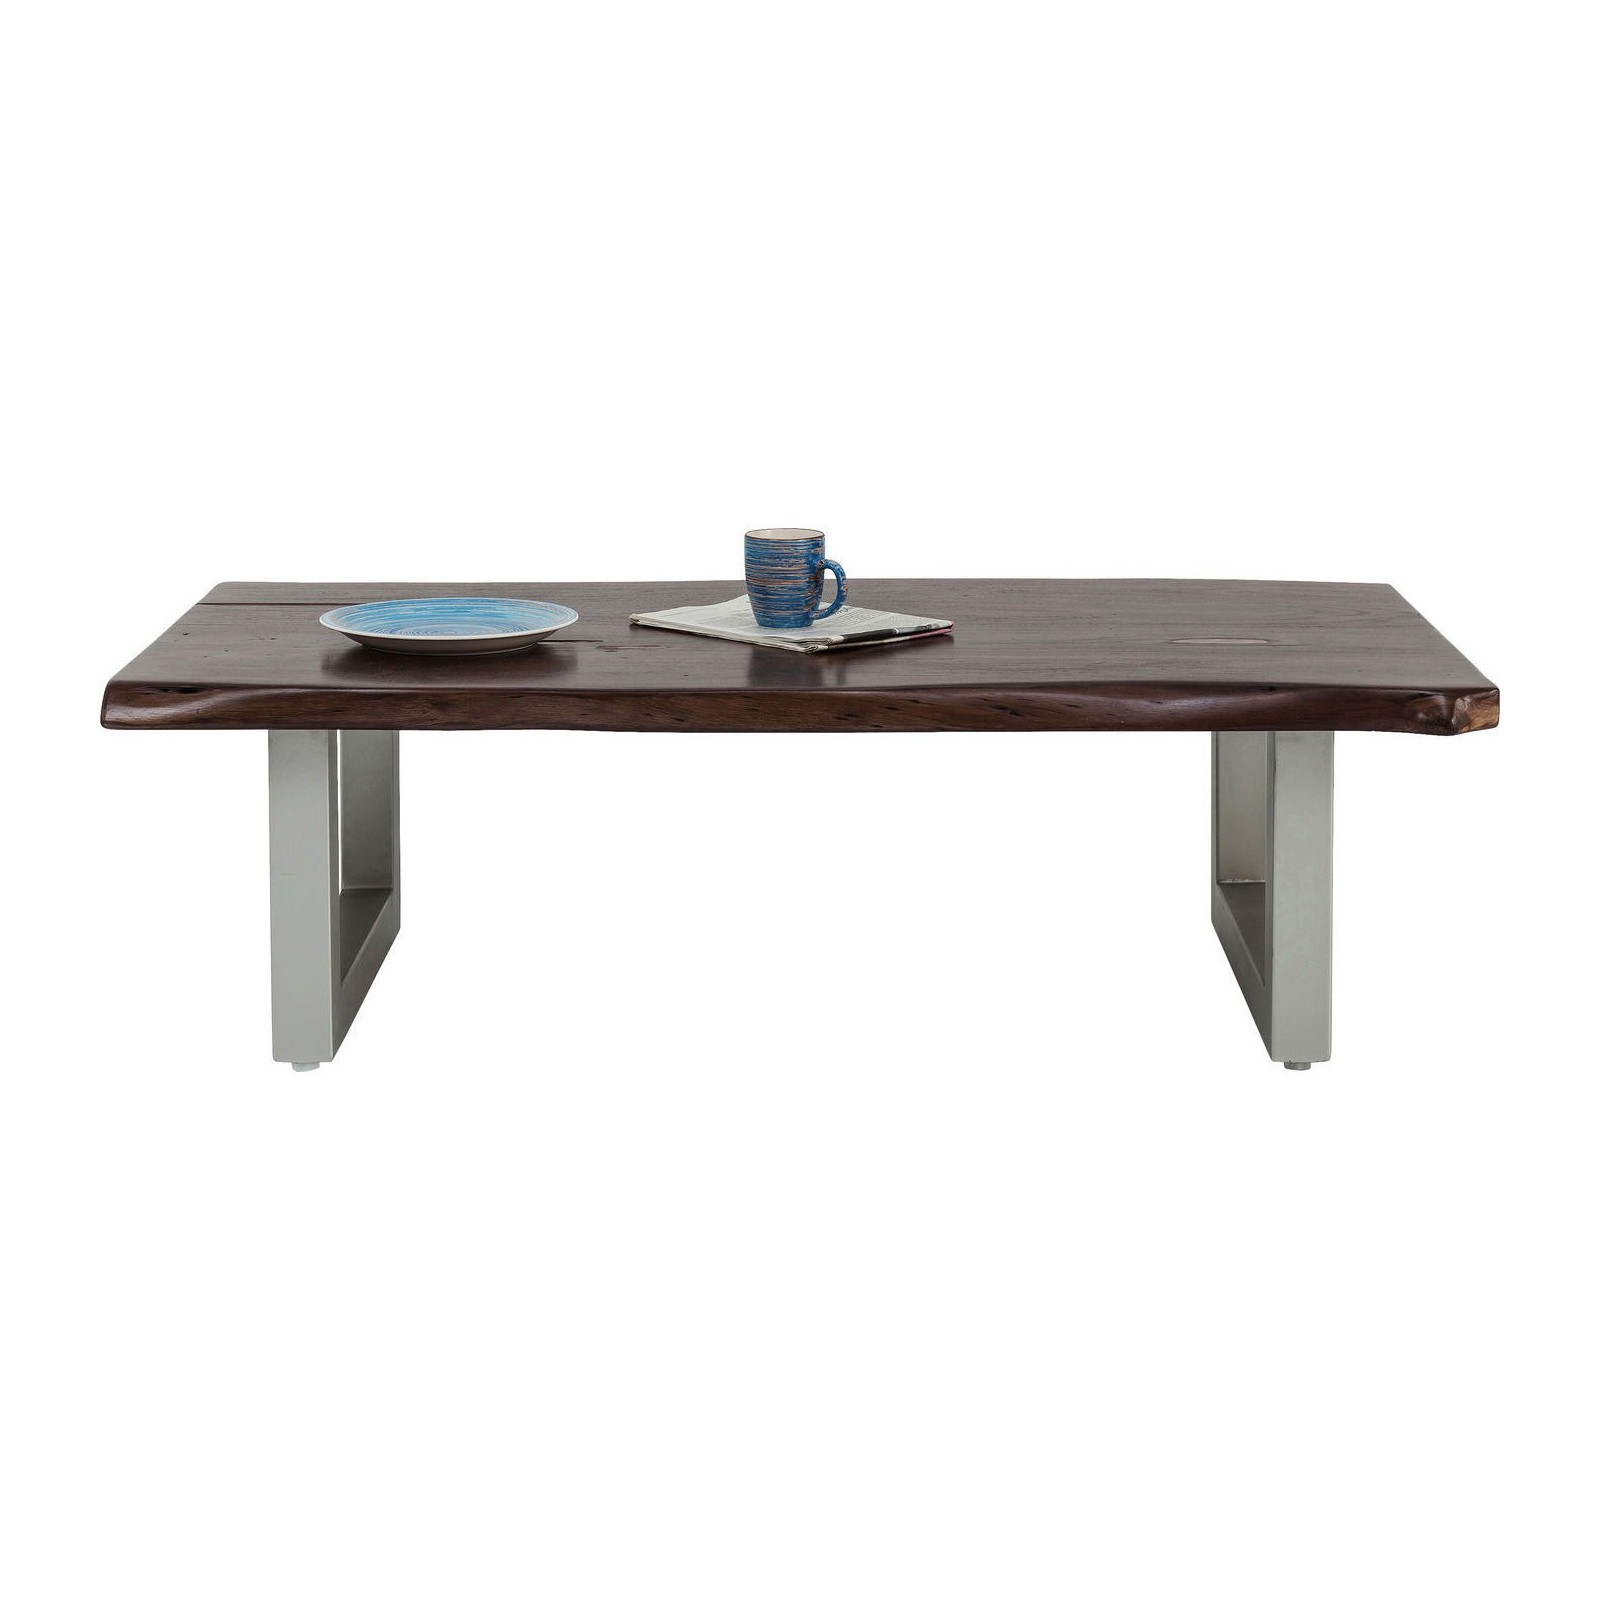 Table basse kare design - Table kare design ...